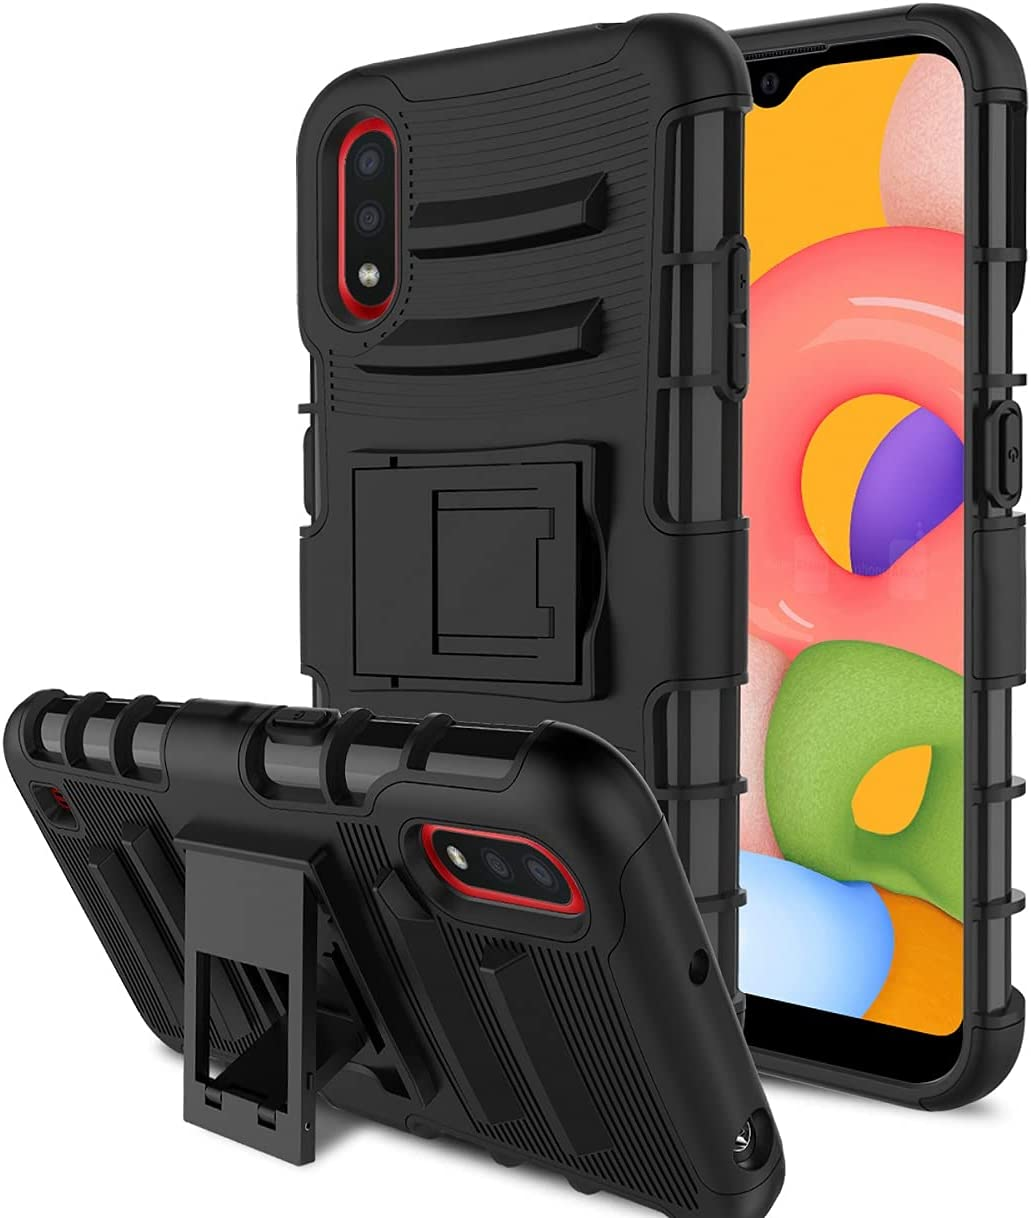 RioGree Phone Case for Samsung Galaxy A01 with 2 Pcs Screen Protector Kickstand Heavy Duty Durable for Women Men Girls Boys - Black